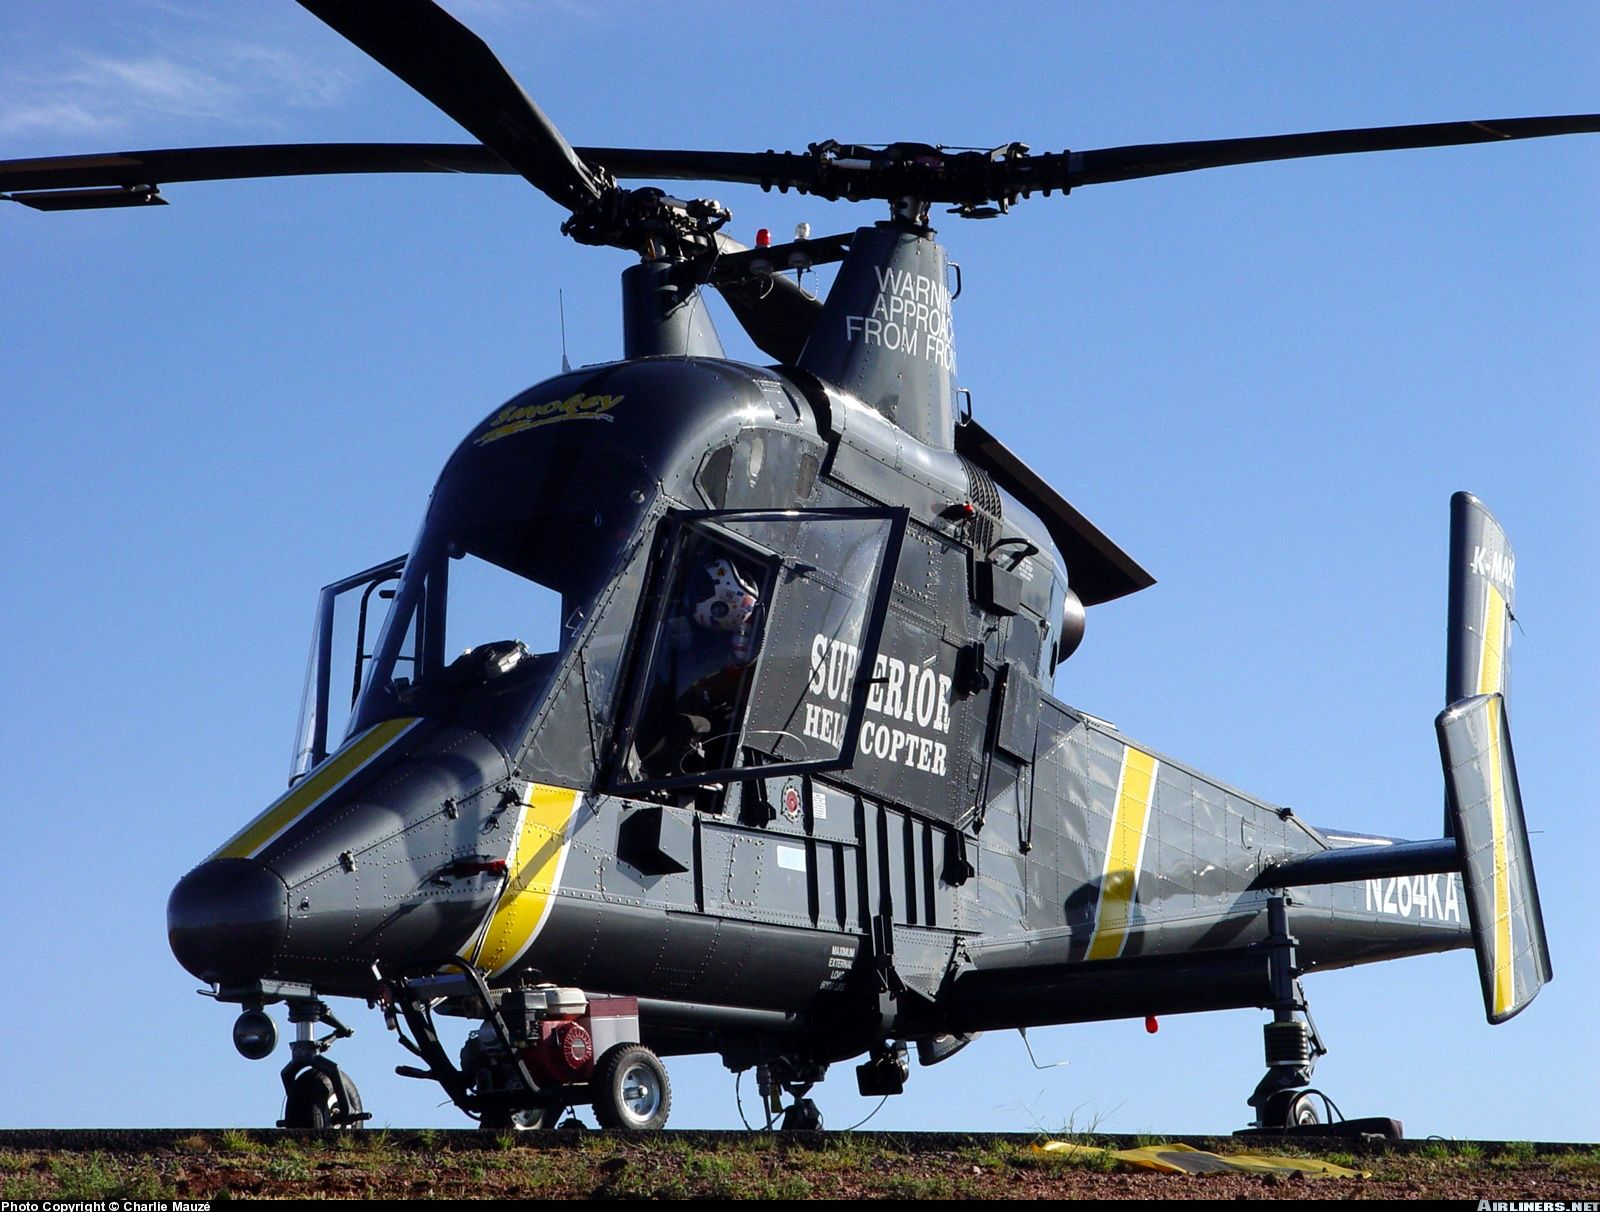 Kaman K-MAX is an American helicopter with intermeshing rotors built by Kaman Aircraft.